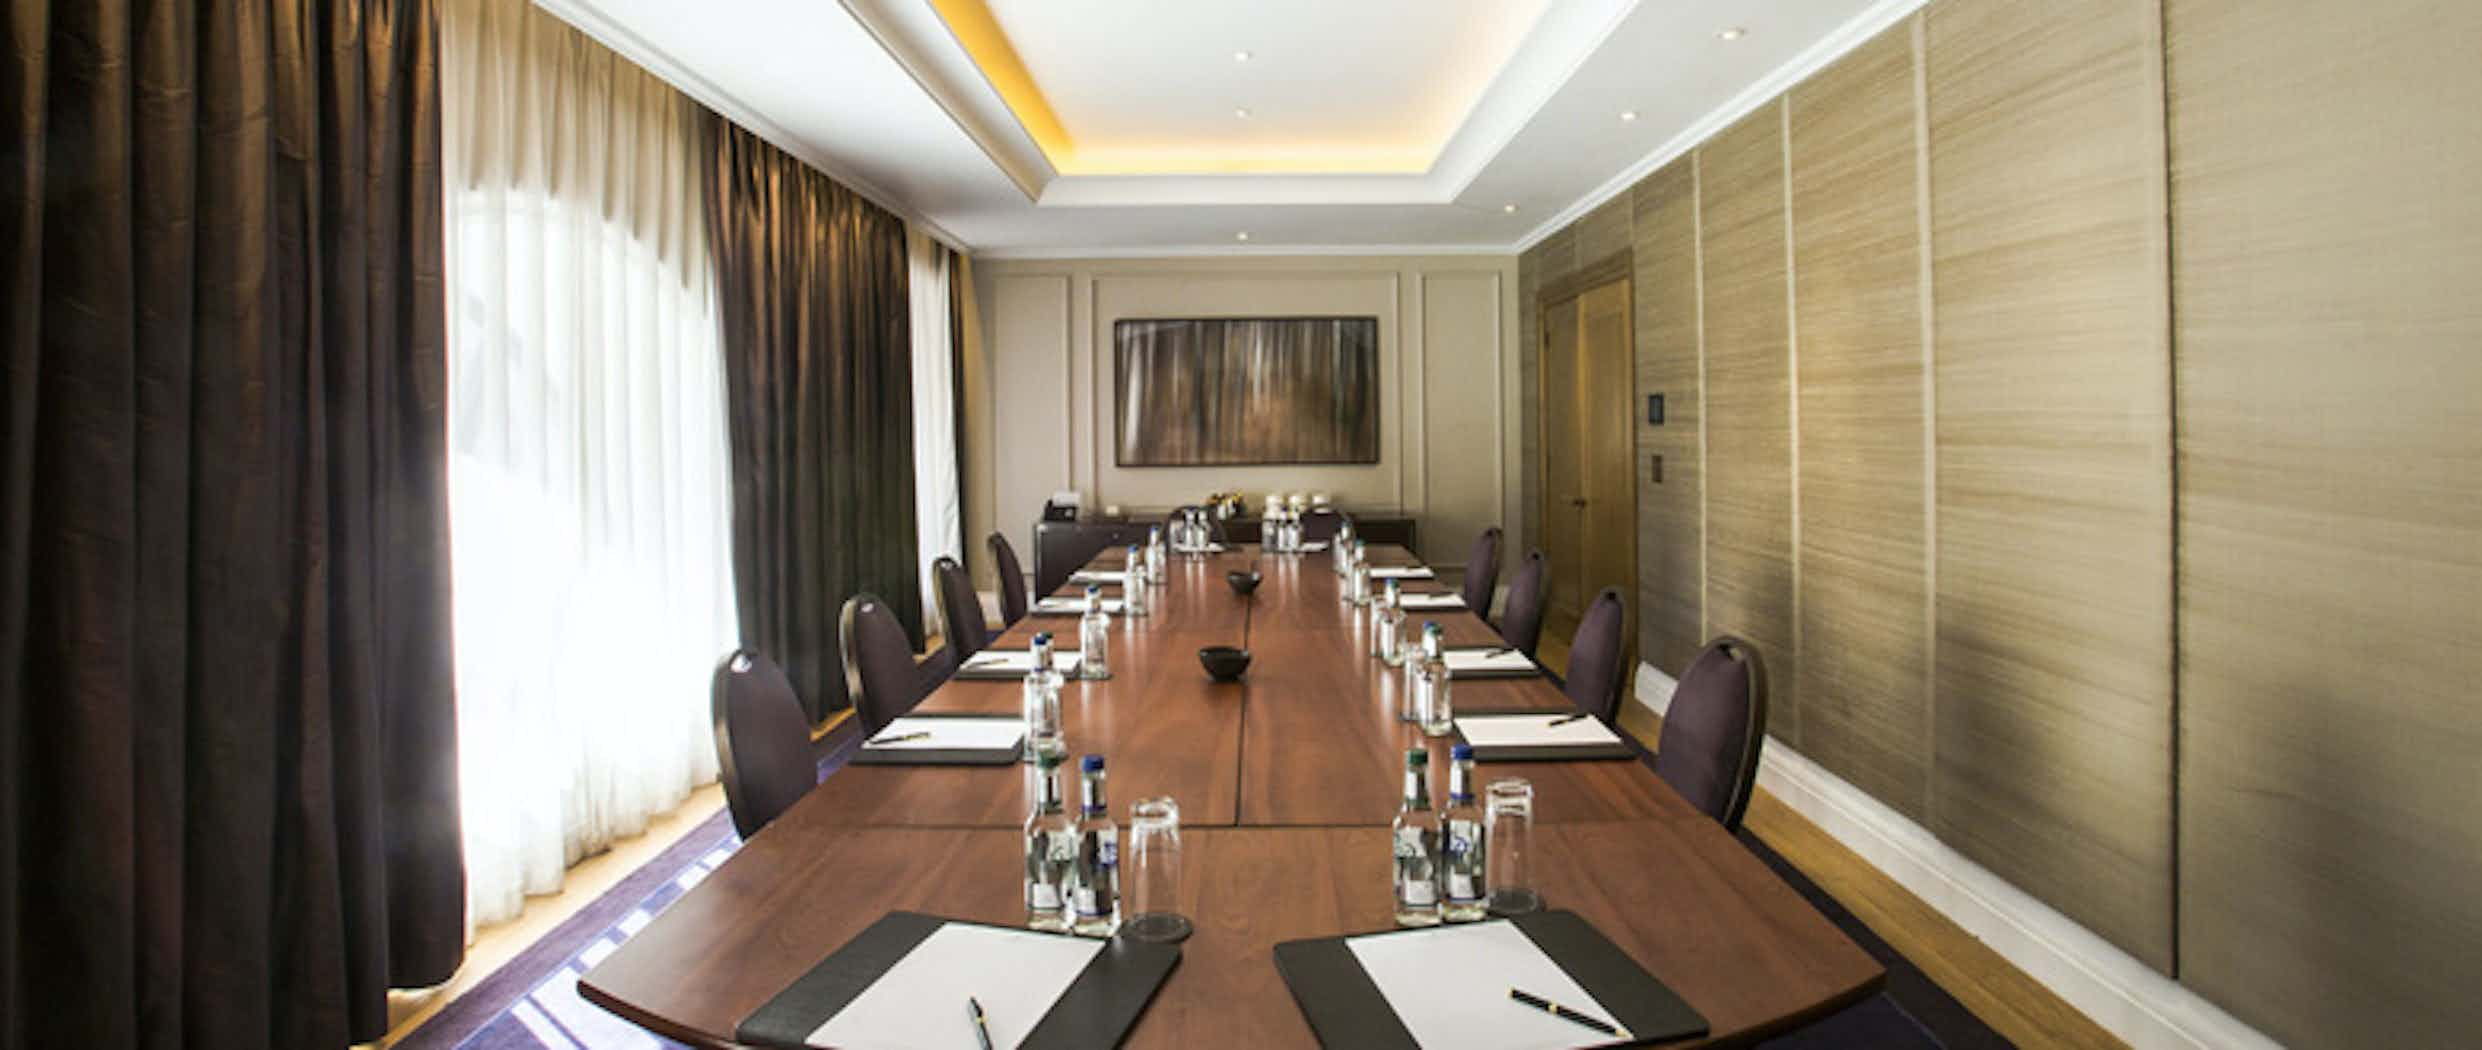 Meeting Rooms, Corinthia Hotel